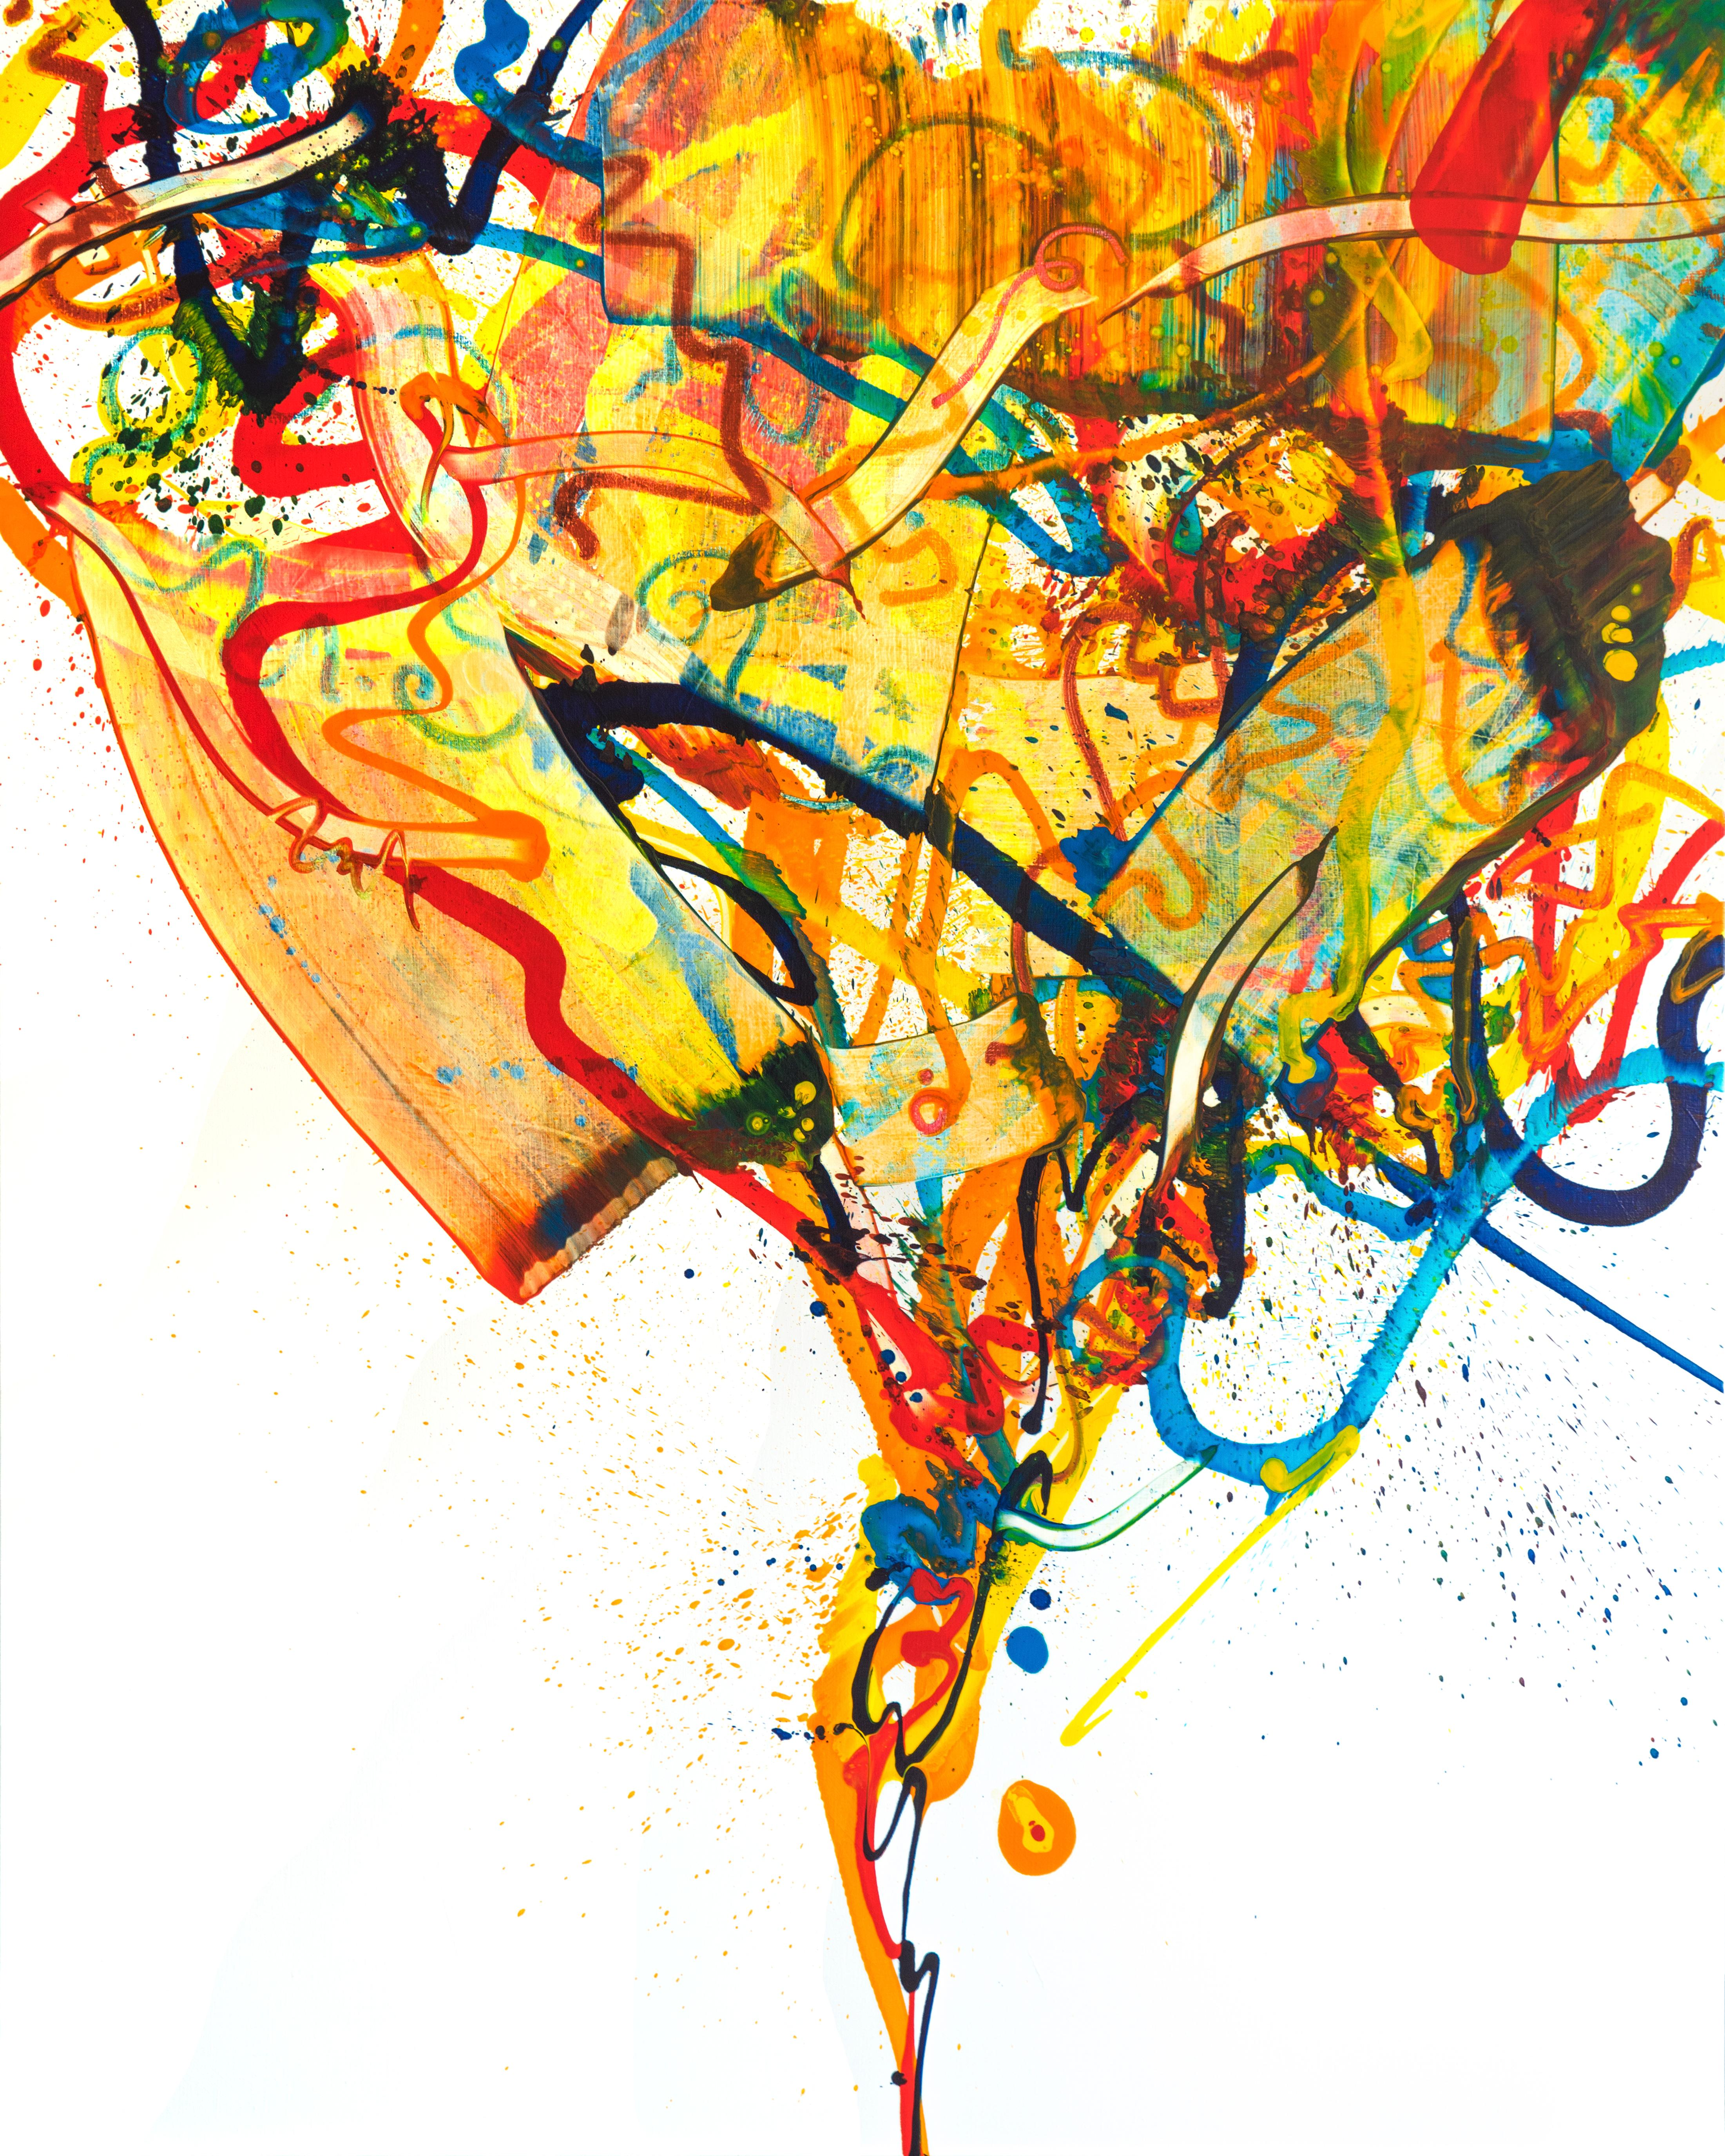 Cross-section of the moment 43, Abstract Art Oil Painting Expressionist Yellow